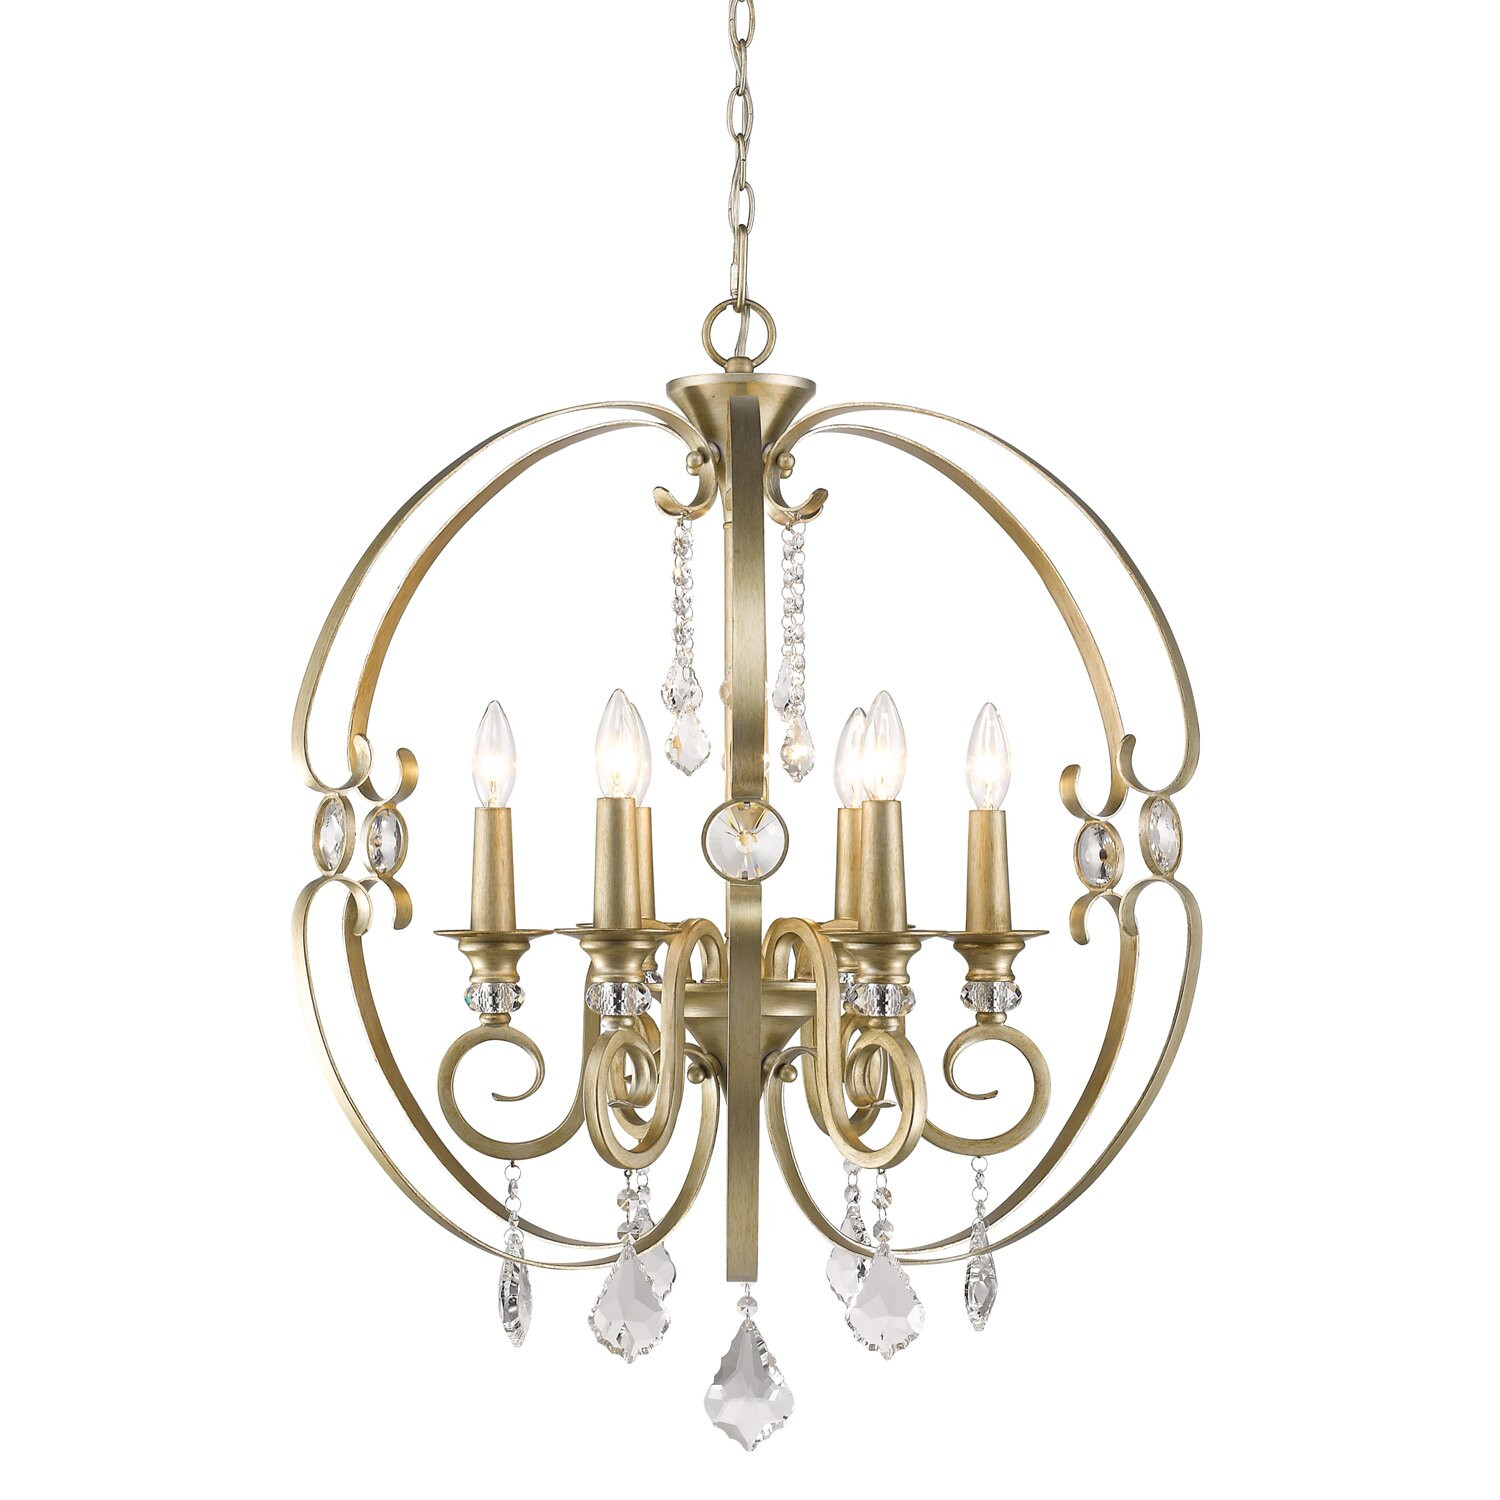 Wayfair Chandelier: Wildon Home ® Lizzie 6 Light Candle Chandelier & Reviews